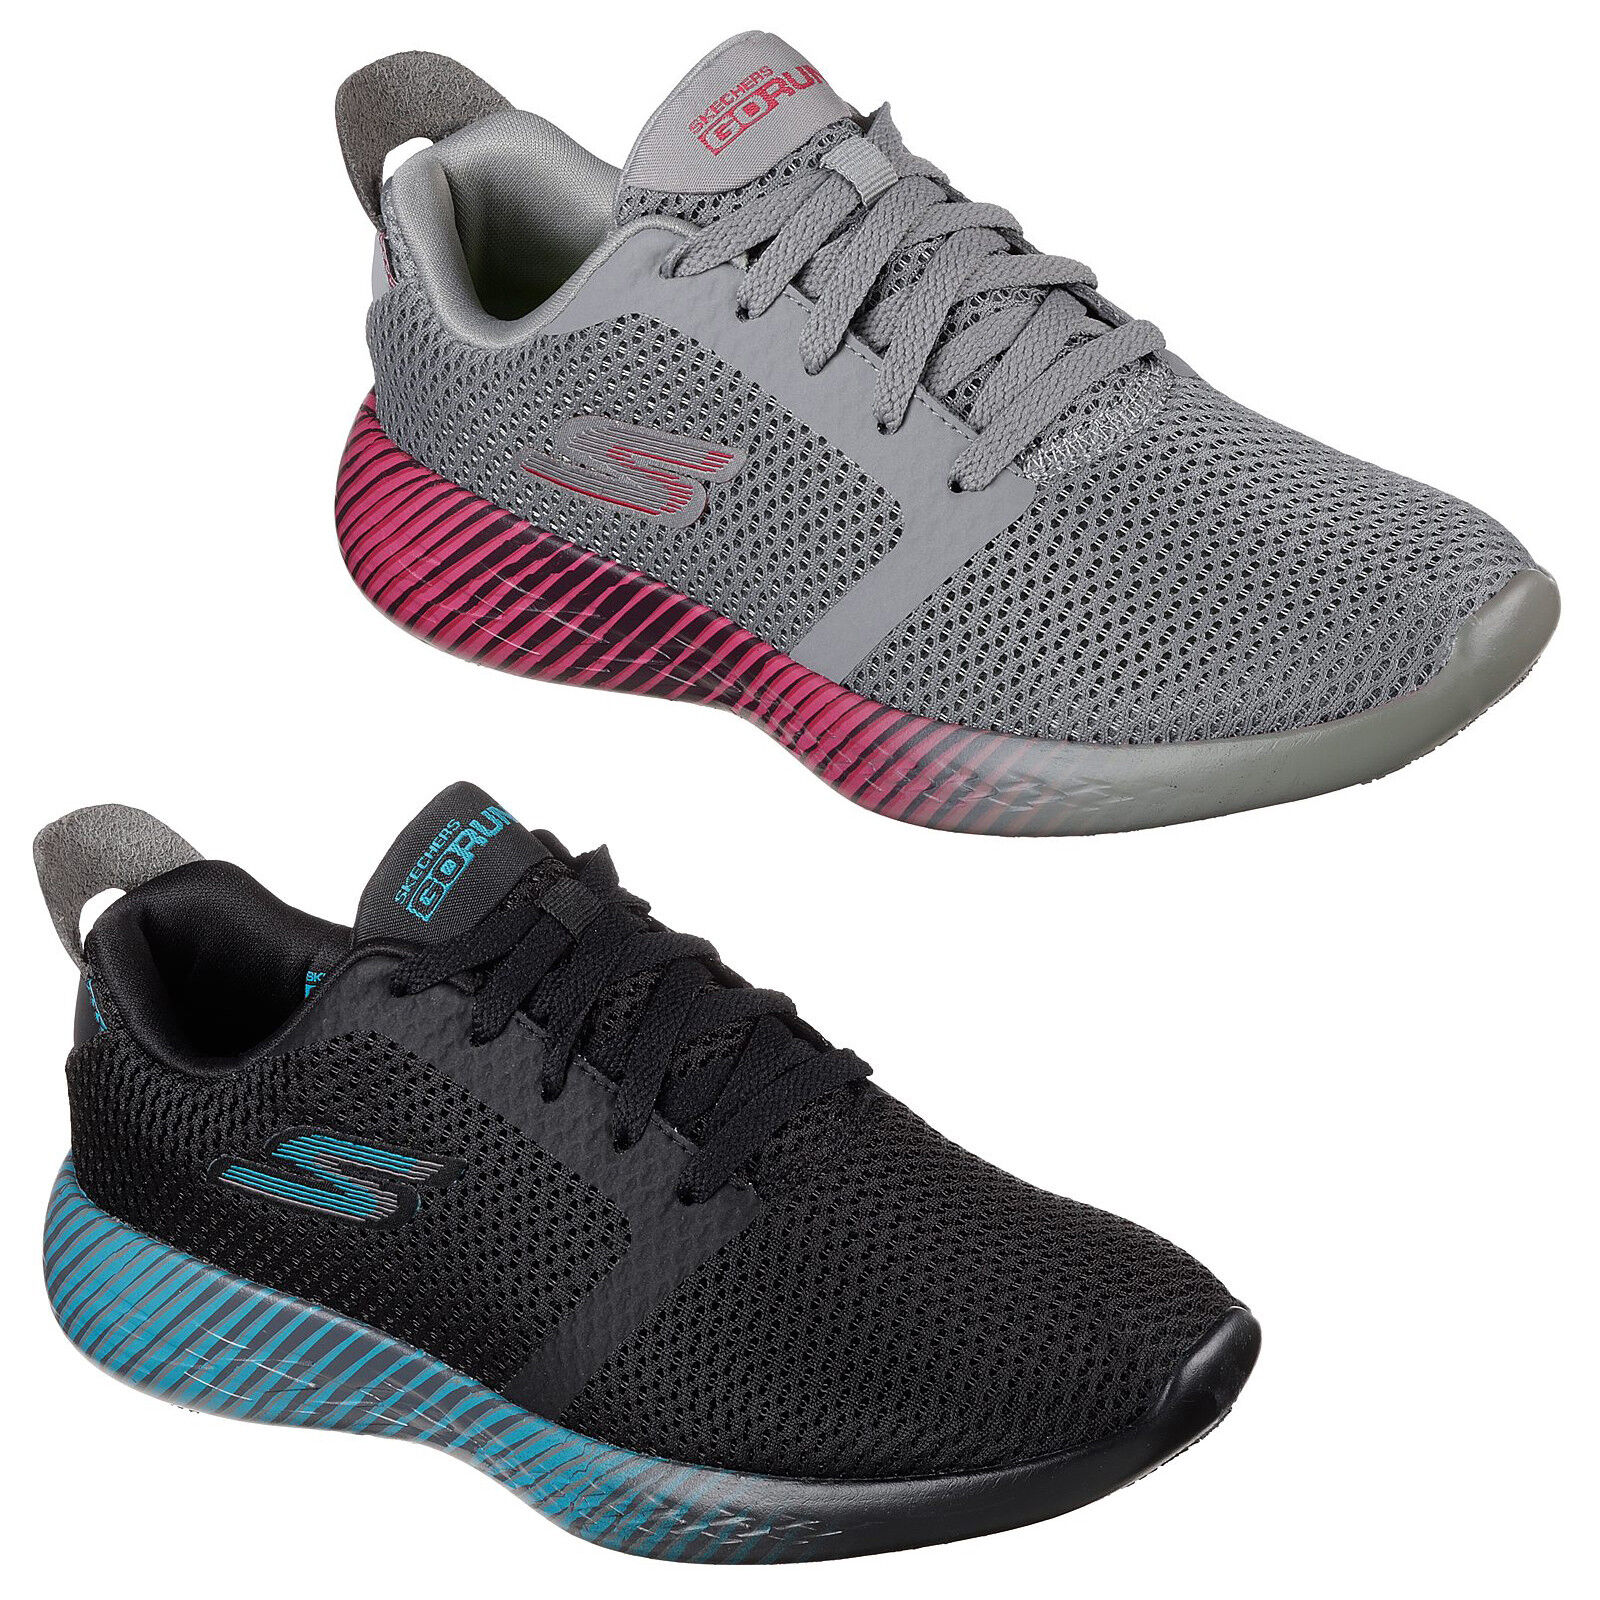 Skechers GoRun 600 - Spectra Trainers Memory Foam Sport  shoes Womens 15067  all goods are specials